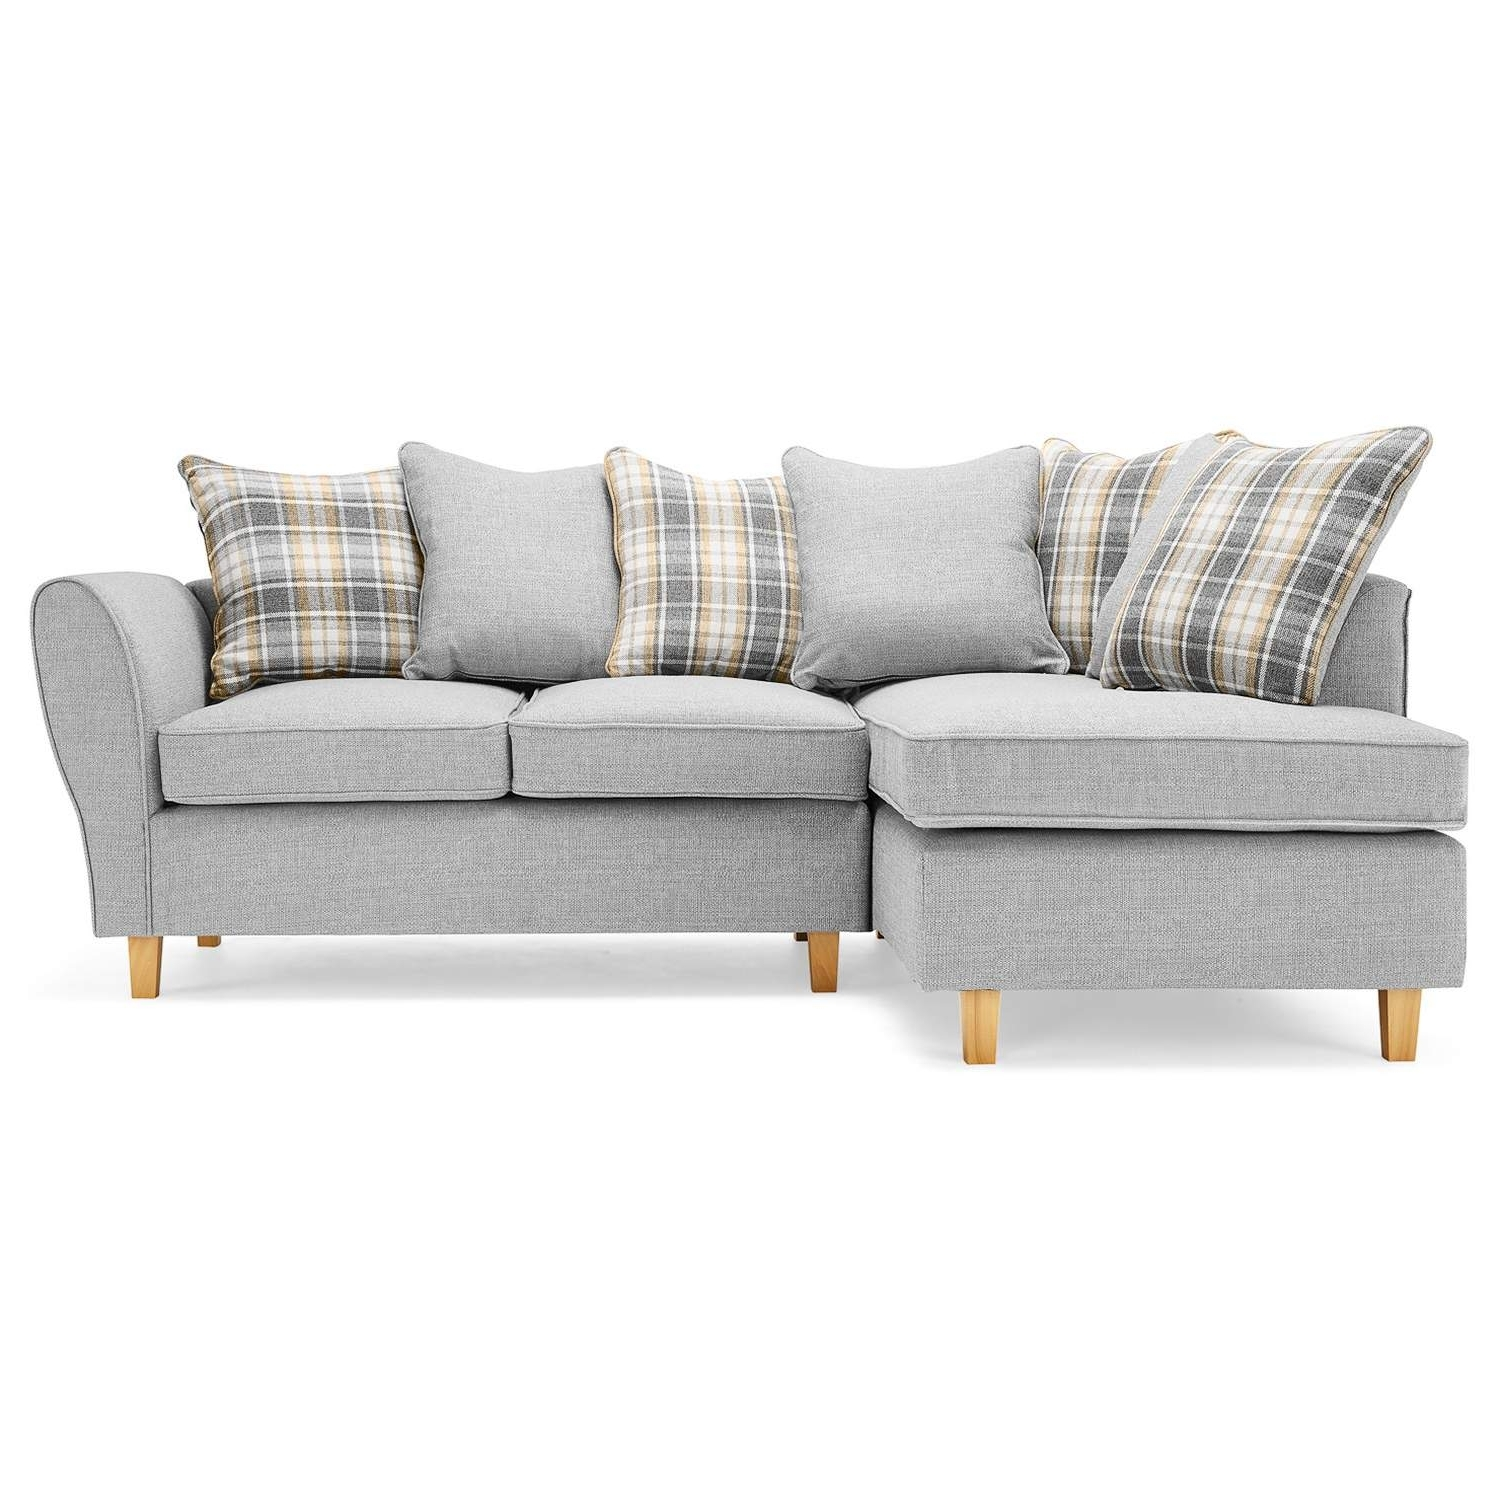 Ashbourne Fabric Corner Sofa – Next Day Delivery Ashbourne Fabric throughout Most Current Fabric Corner Sofas